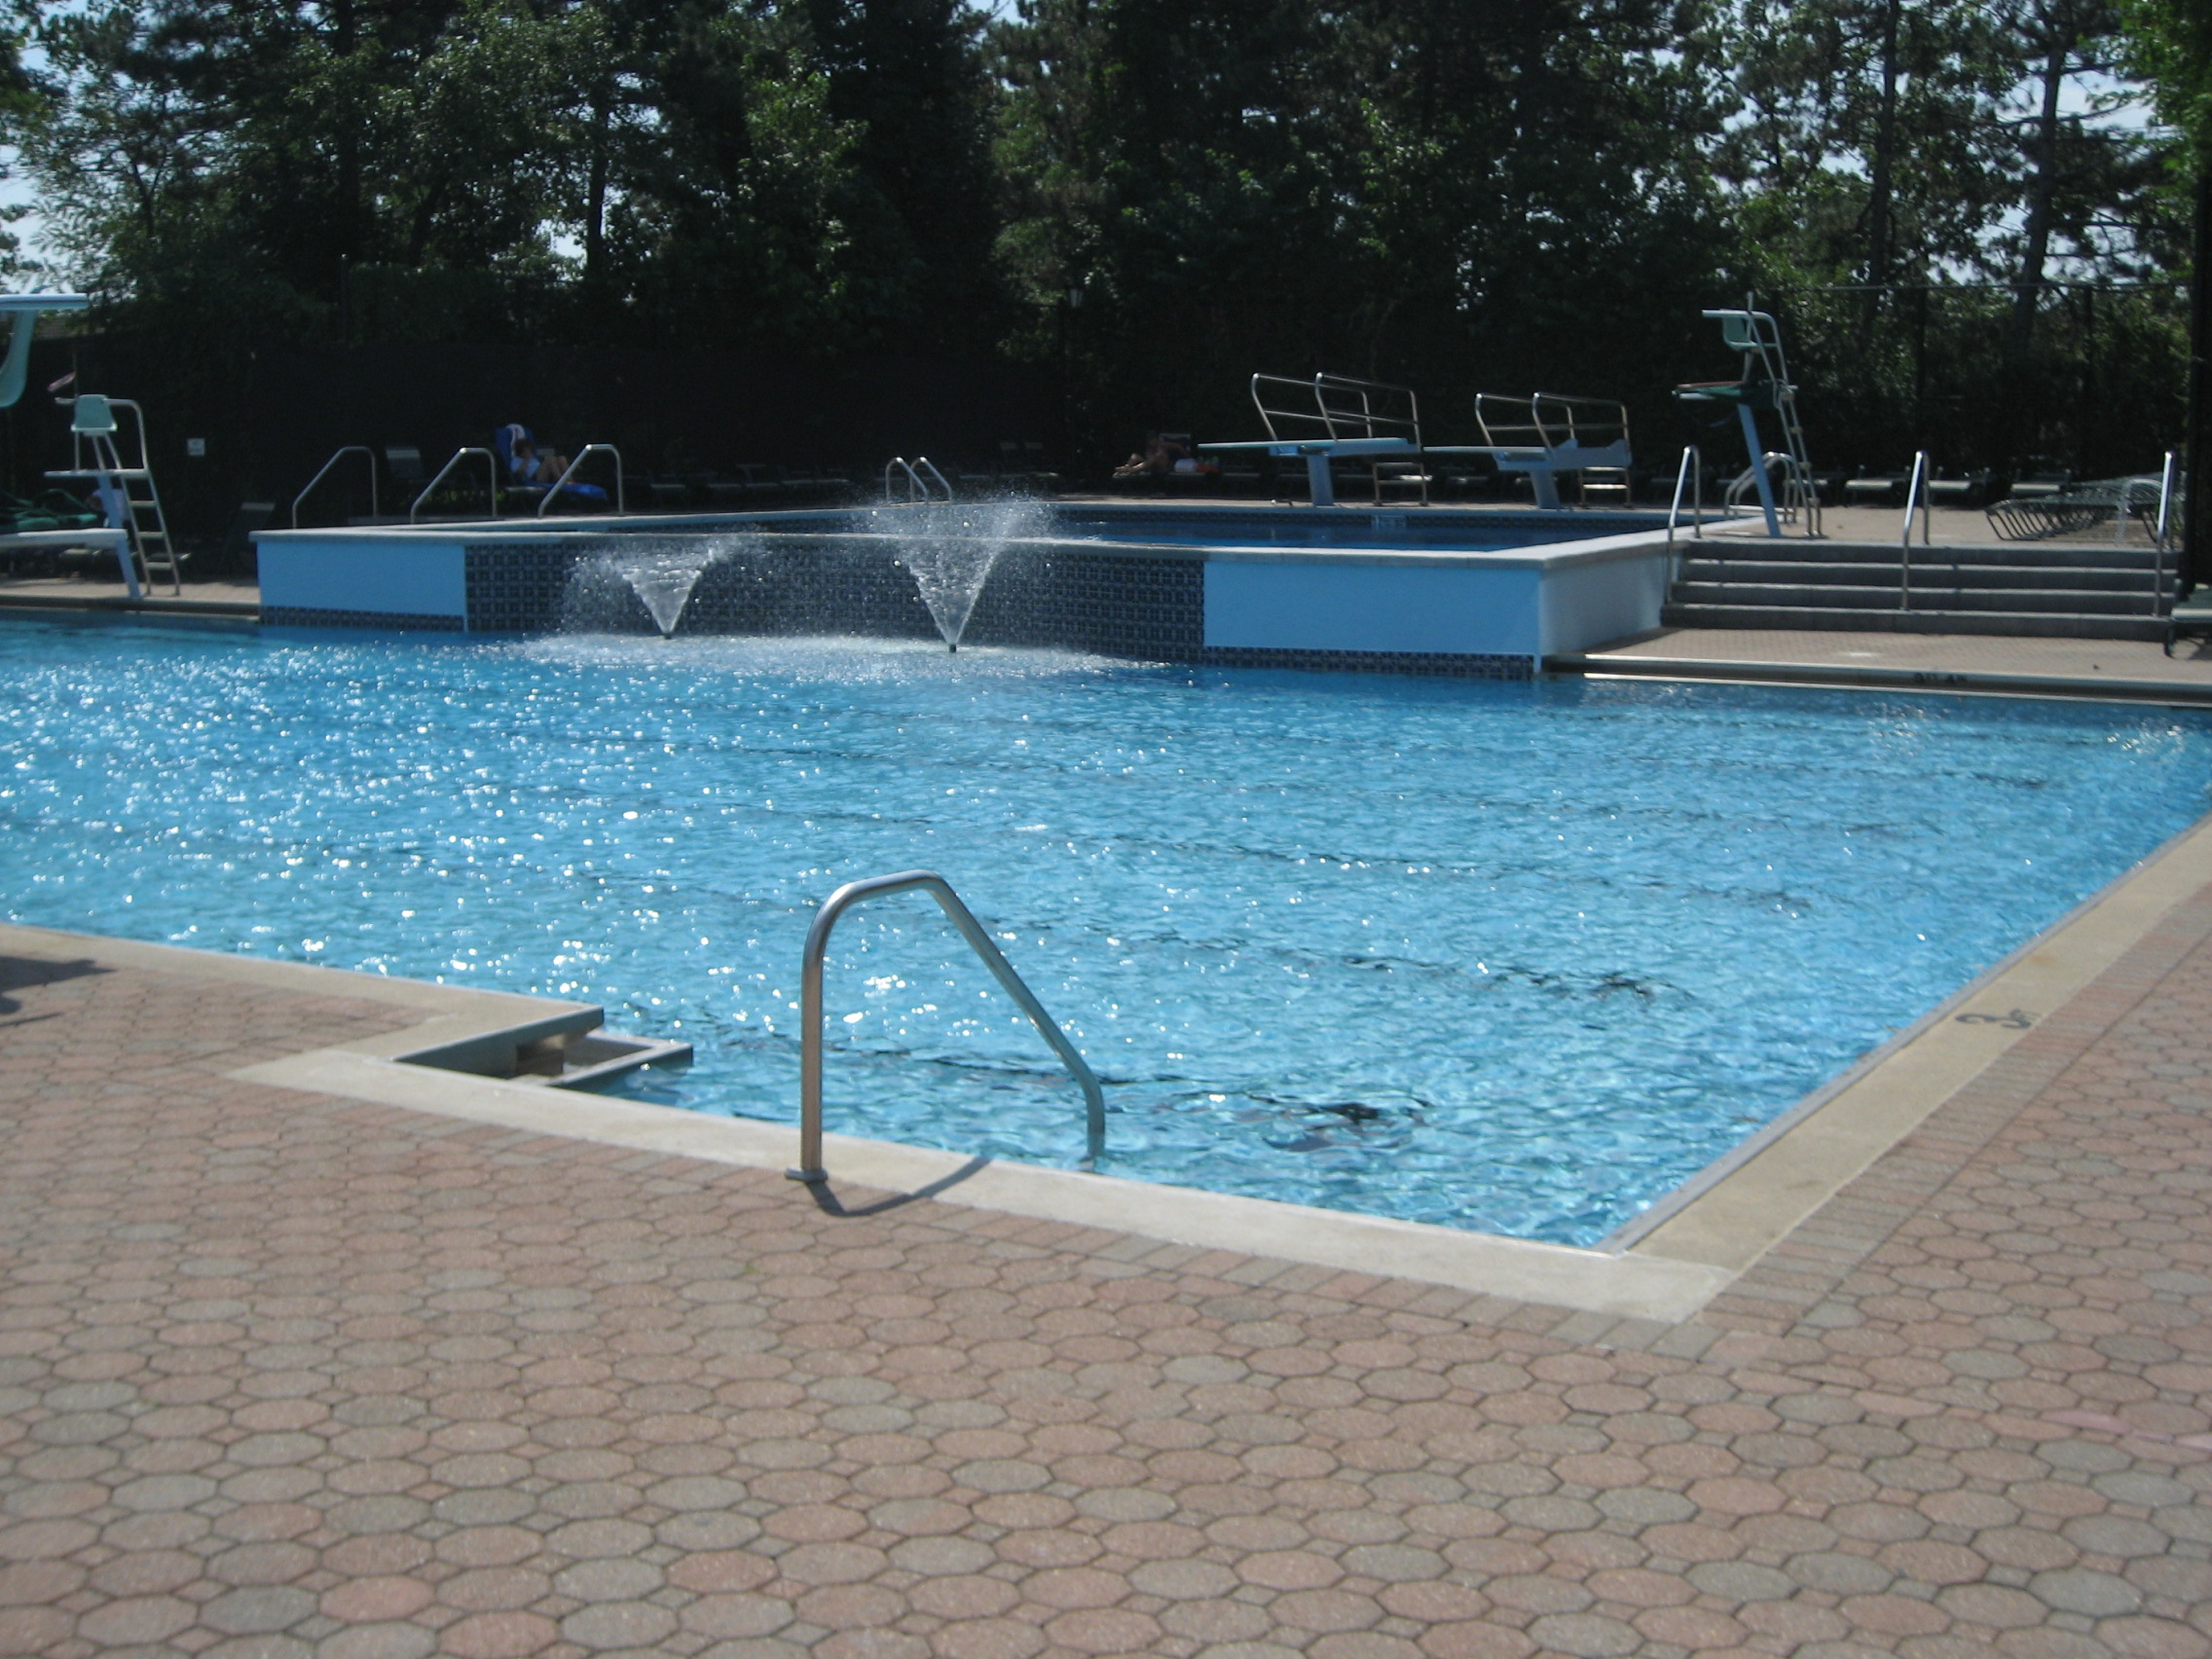 Gallery new jersey pool management for Pool show new jersey